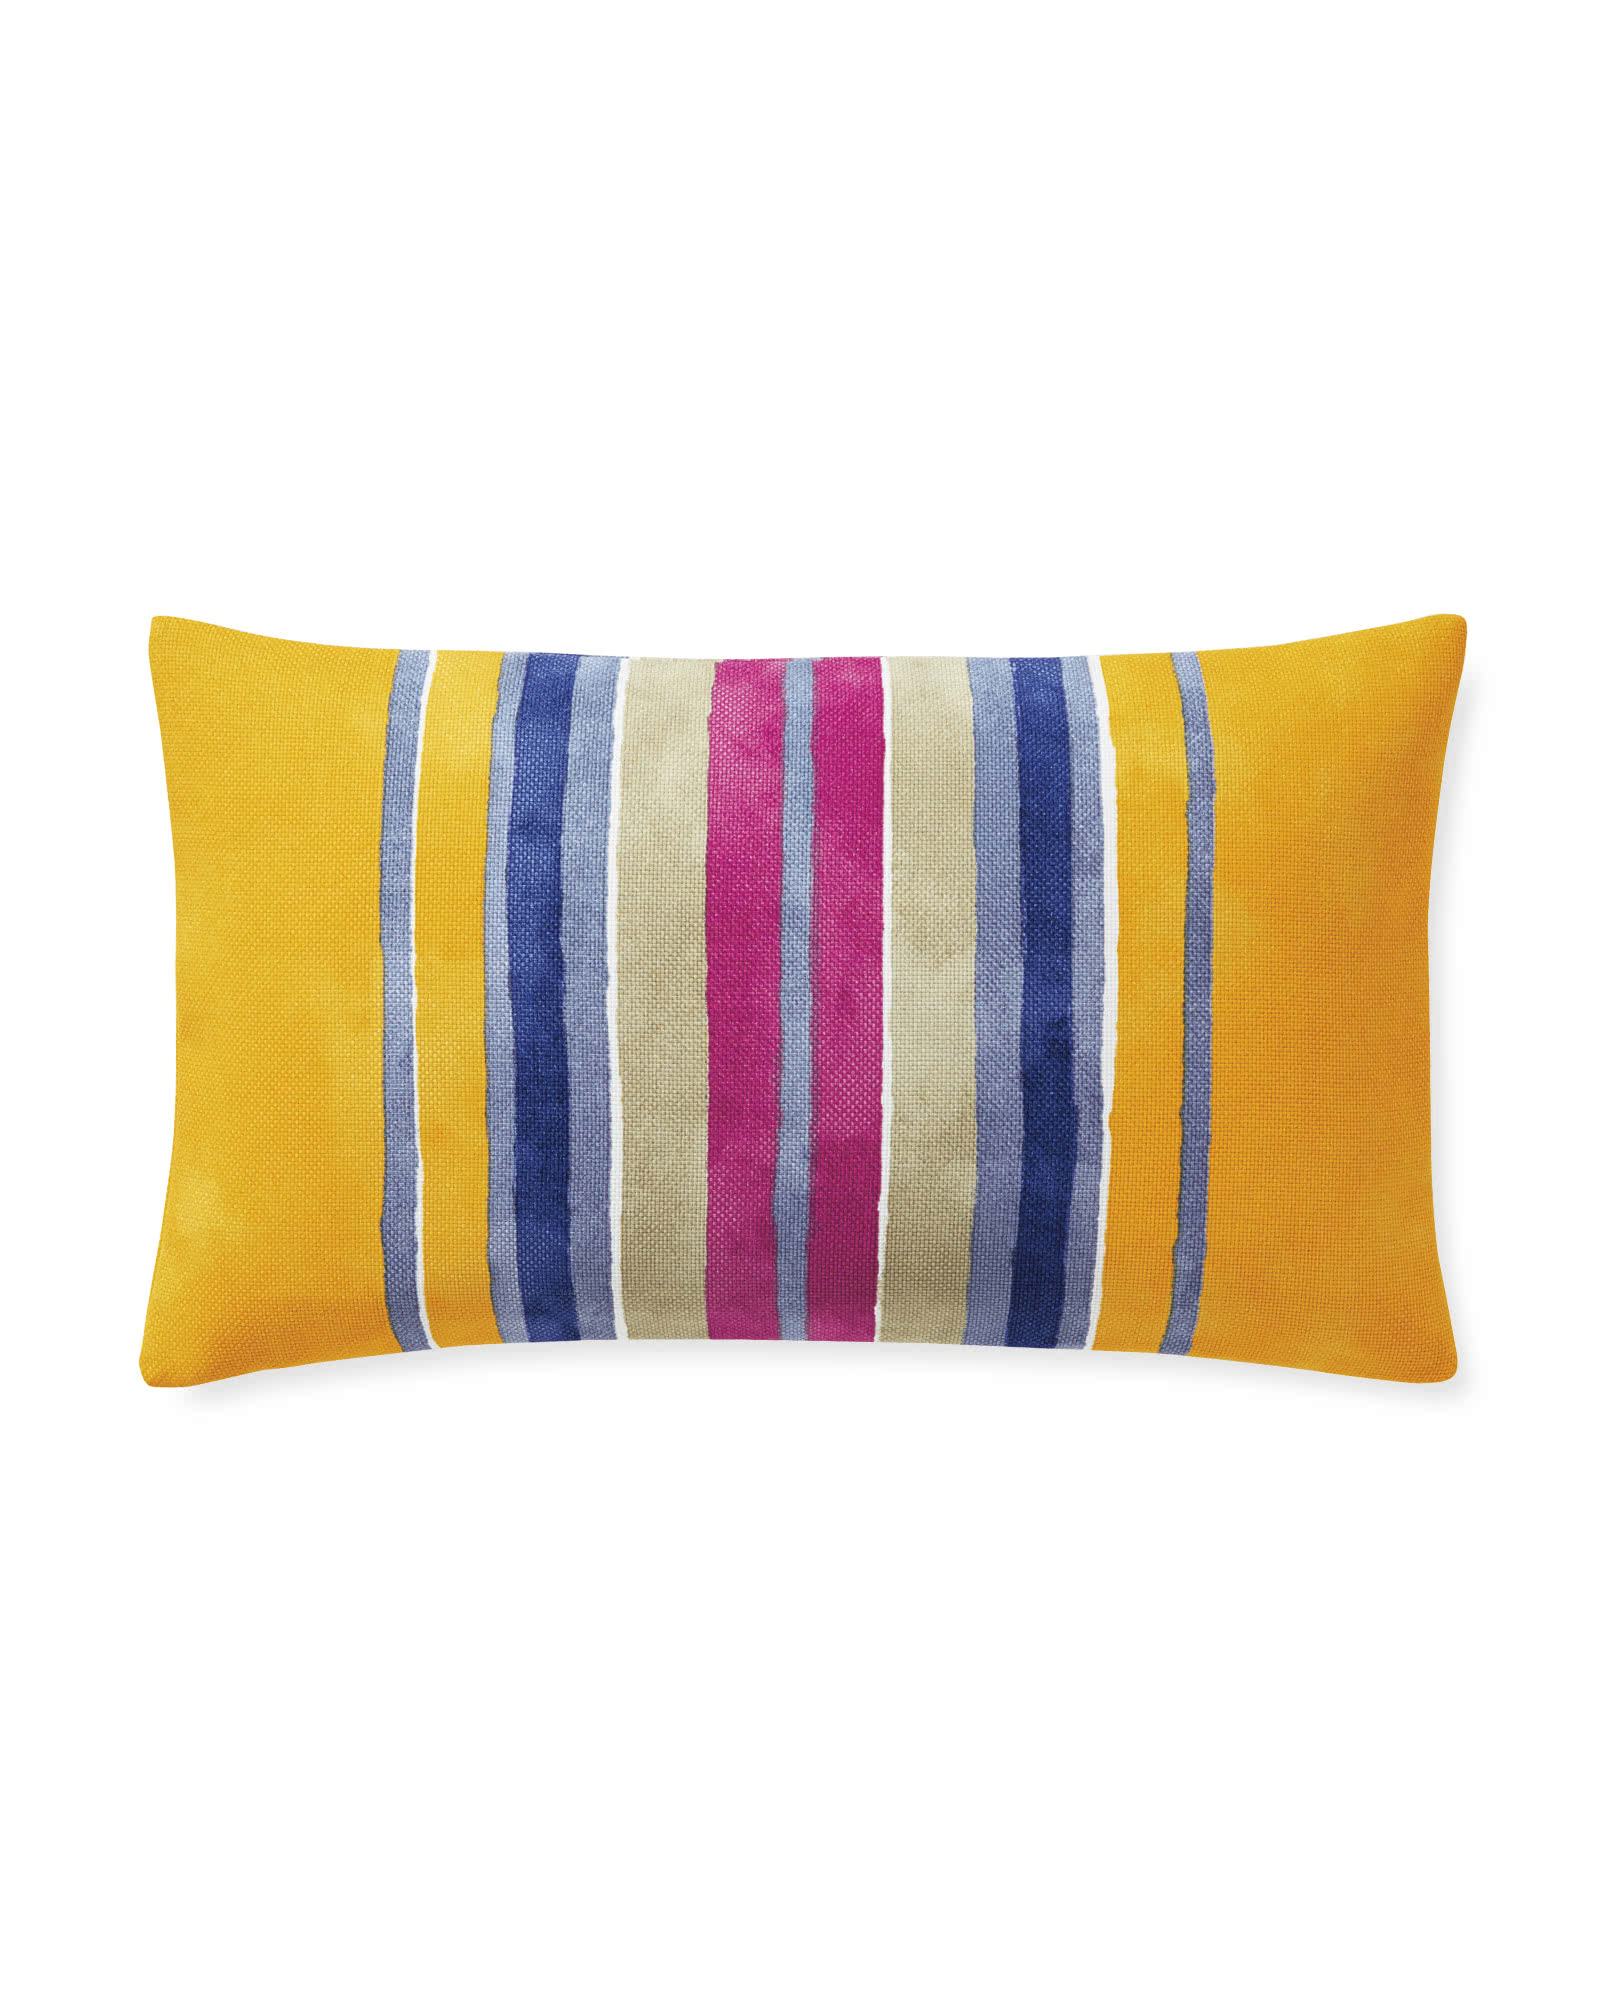 Sonoma Stripe Outdoor Pillow Cover, Yellow